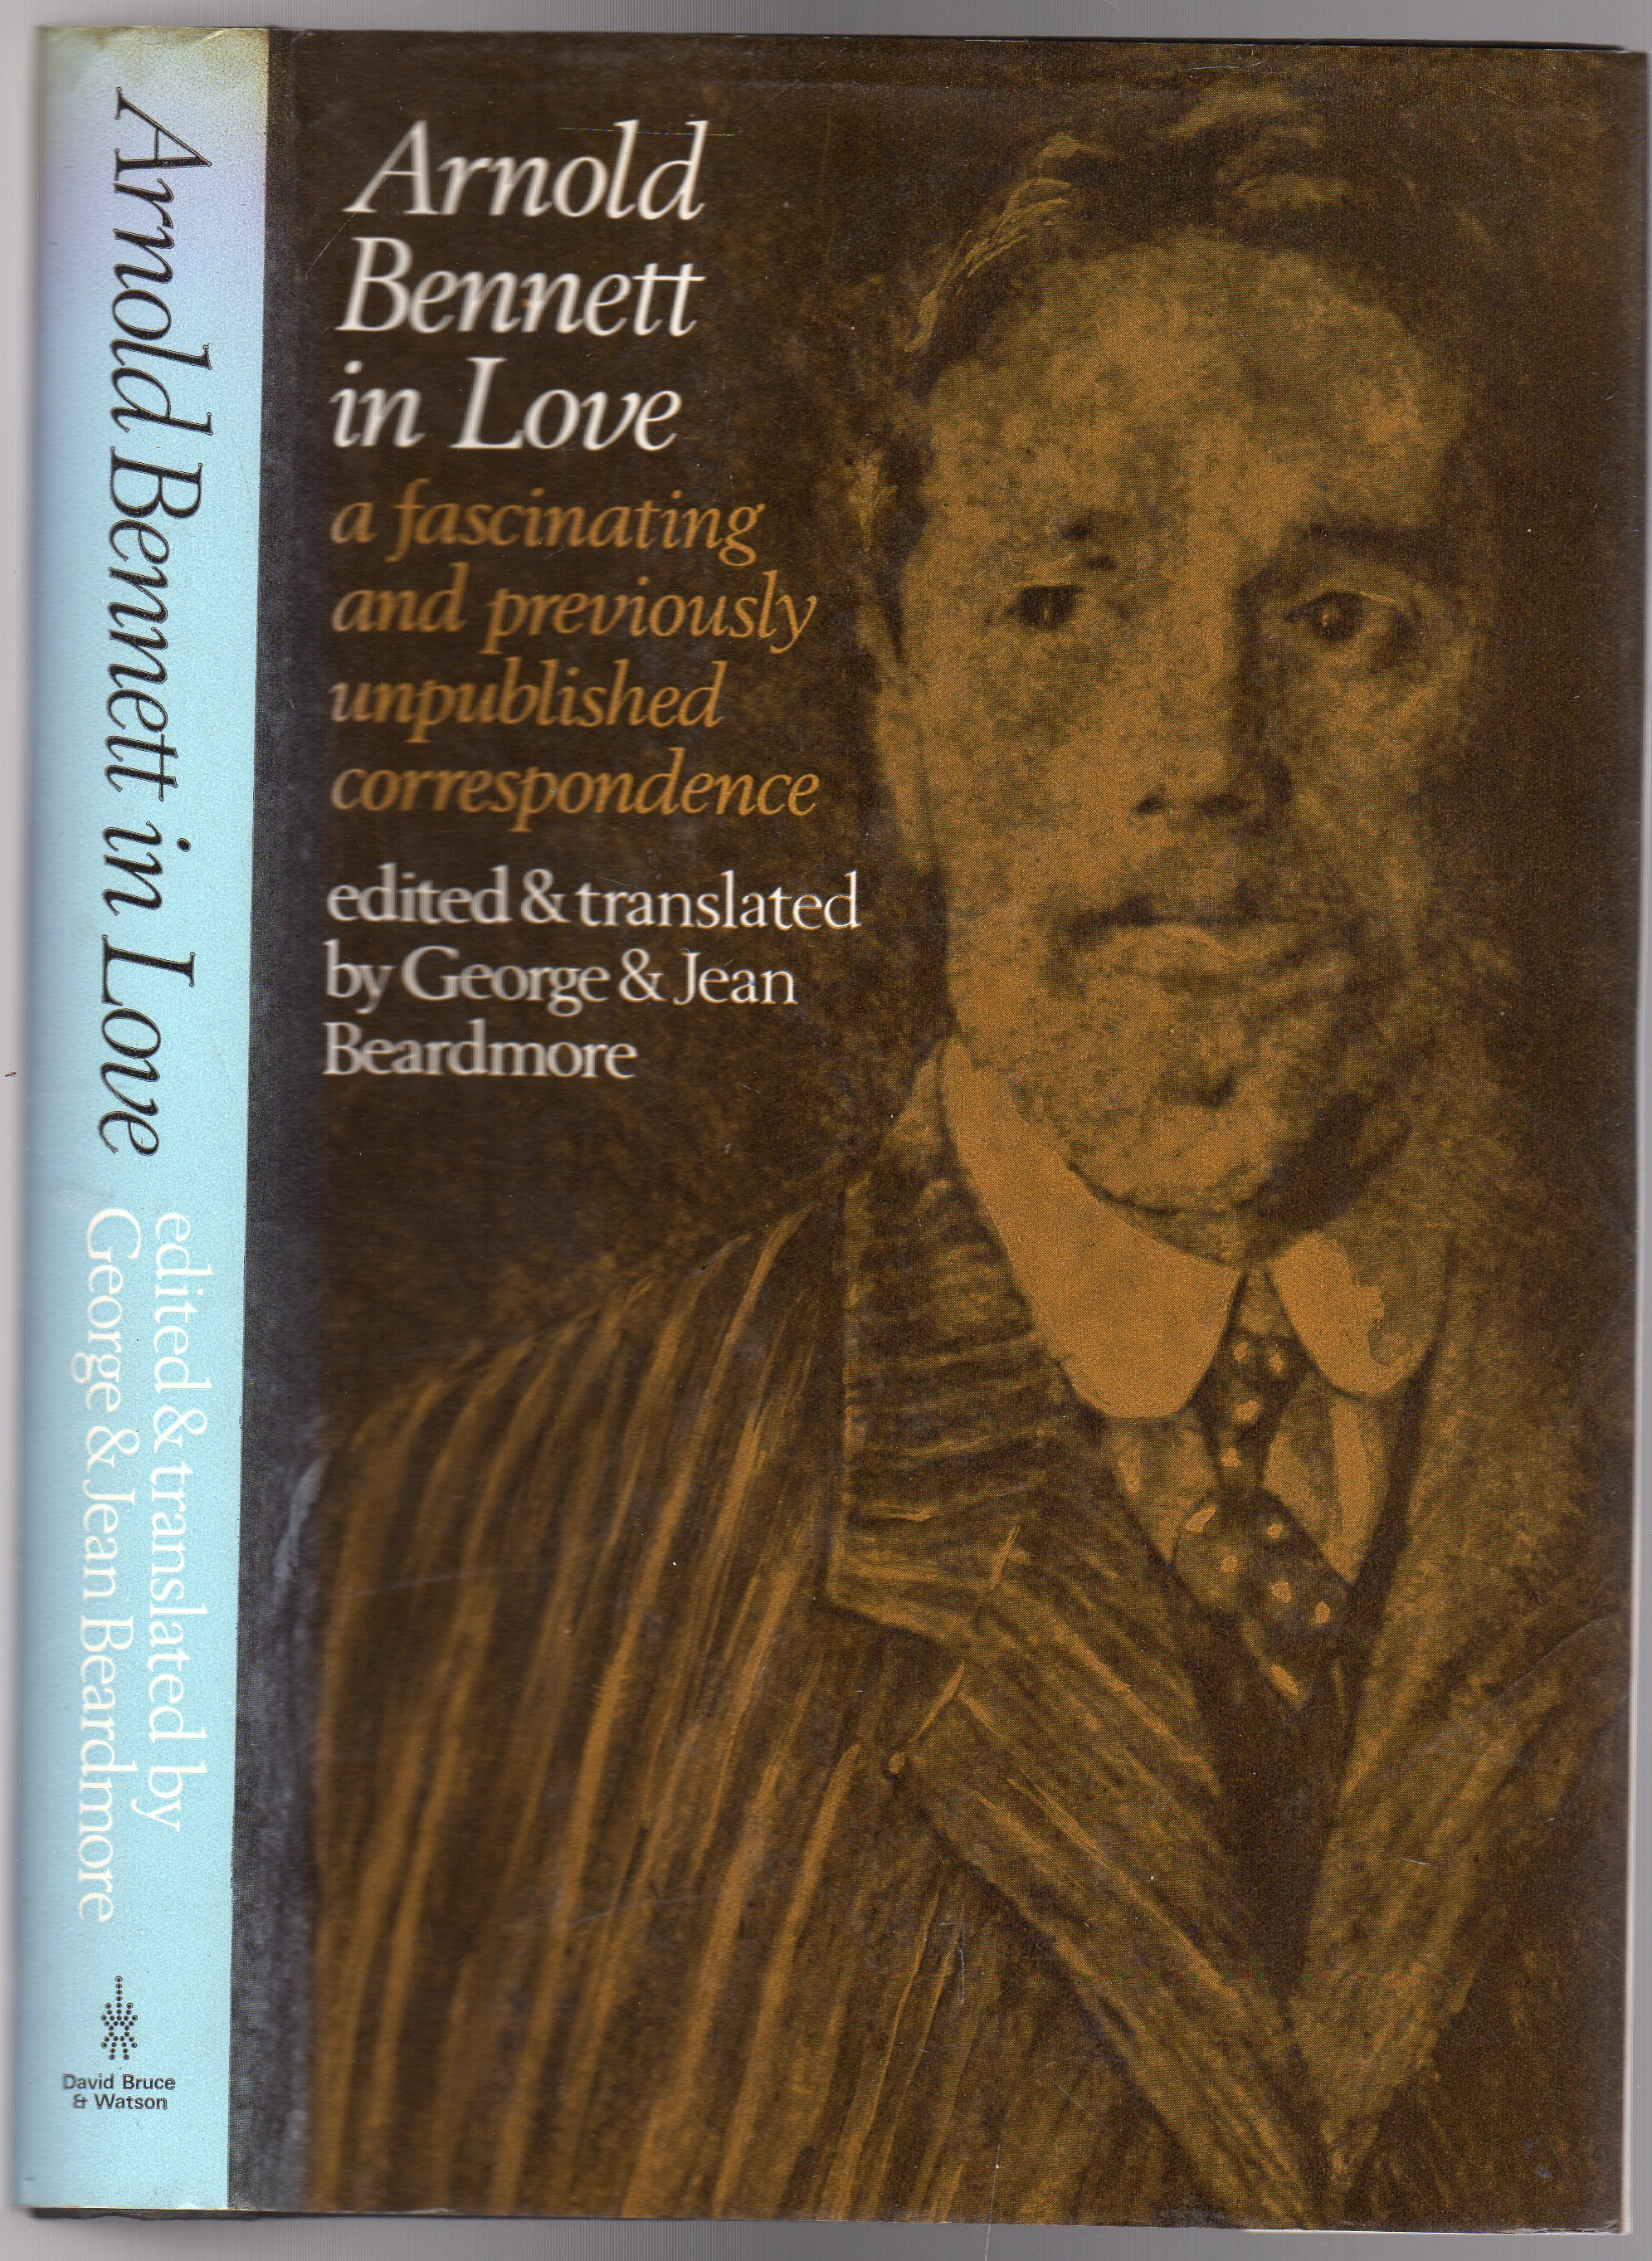 Image for Arnold Bennett in Love: Arnold Bennett and his wife Marguerite Soulié: a Correspondence